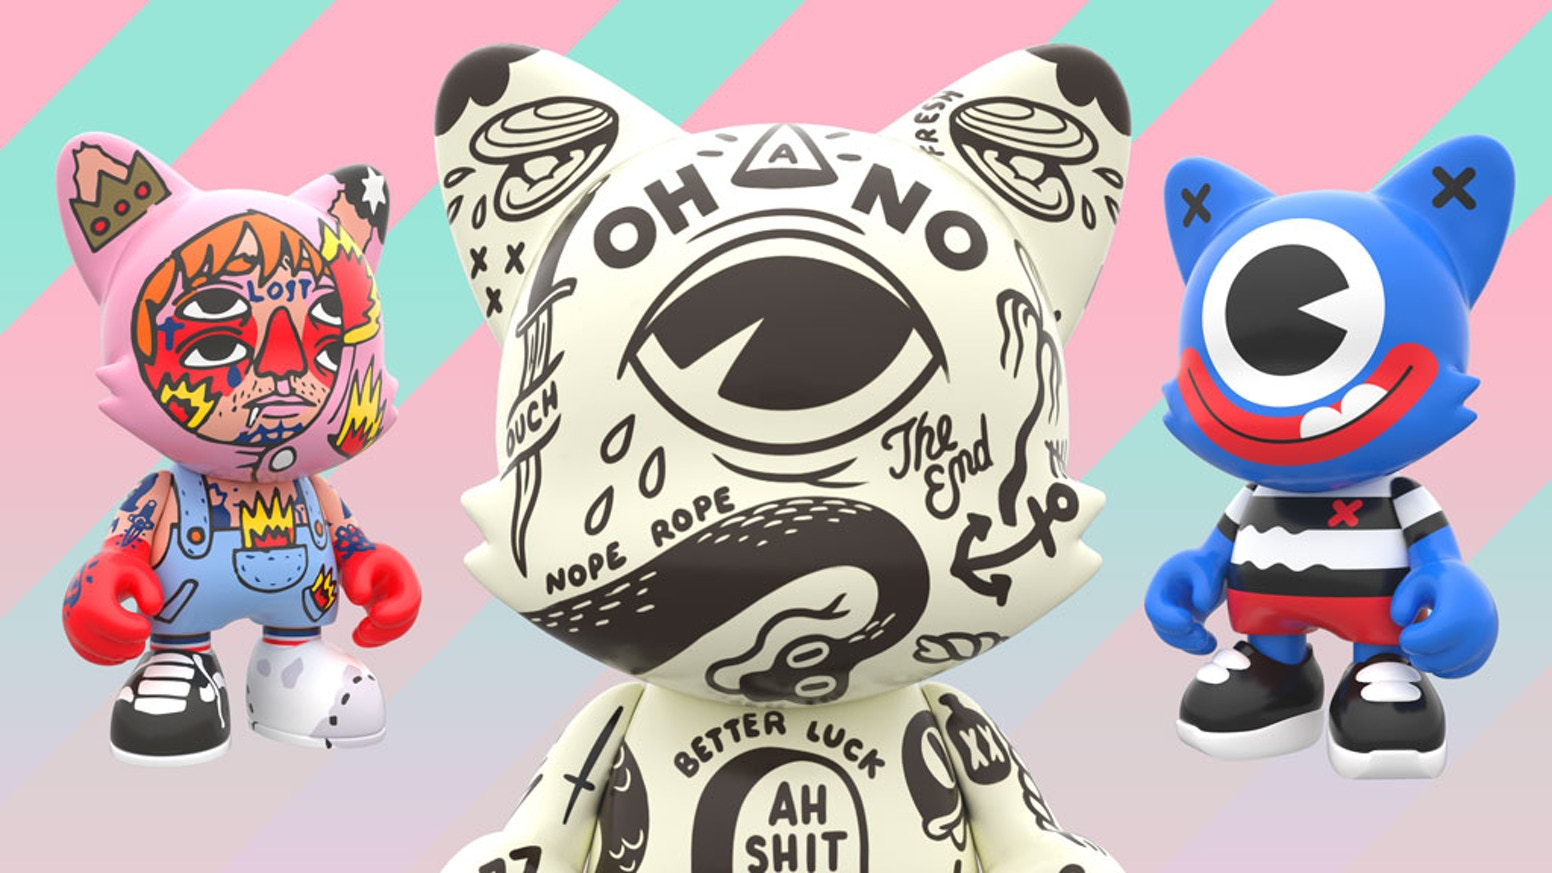 JANKY: Limited Edition Art Toys by Superplastic